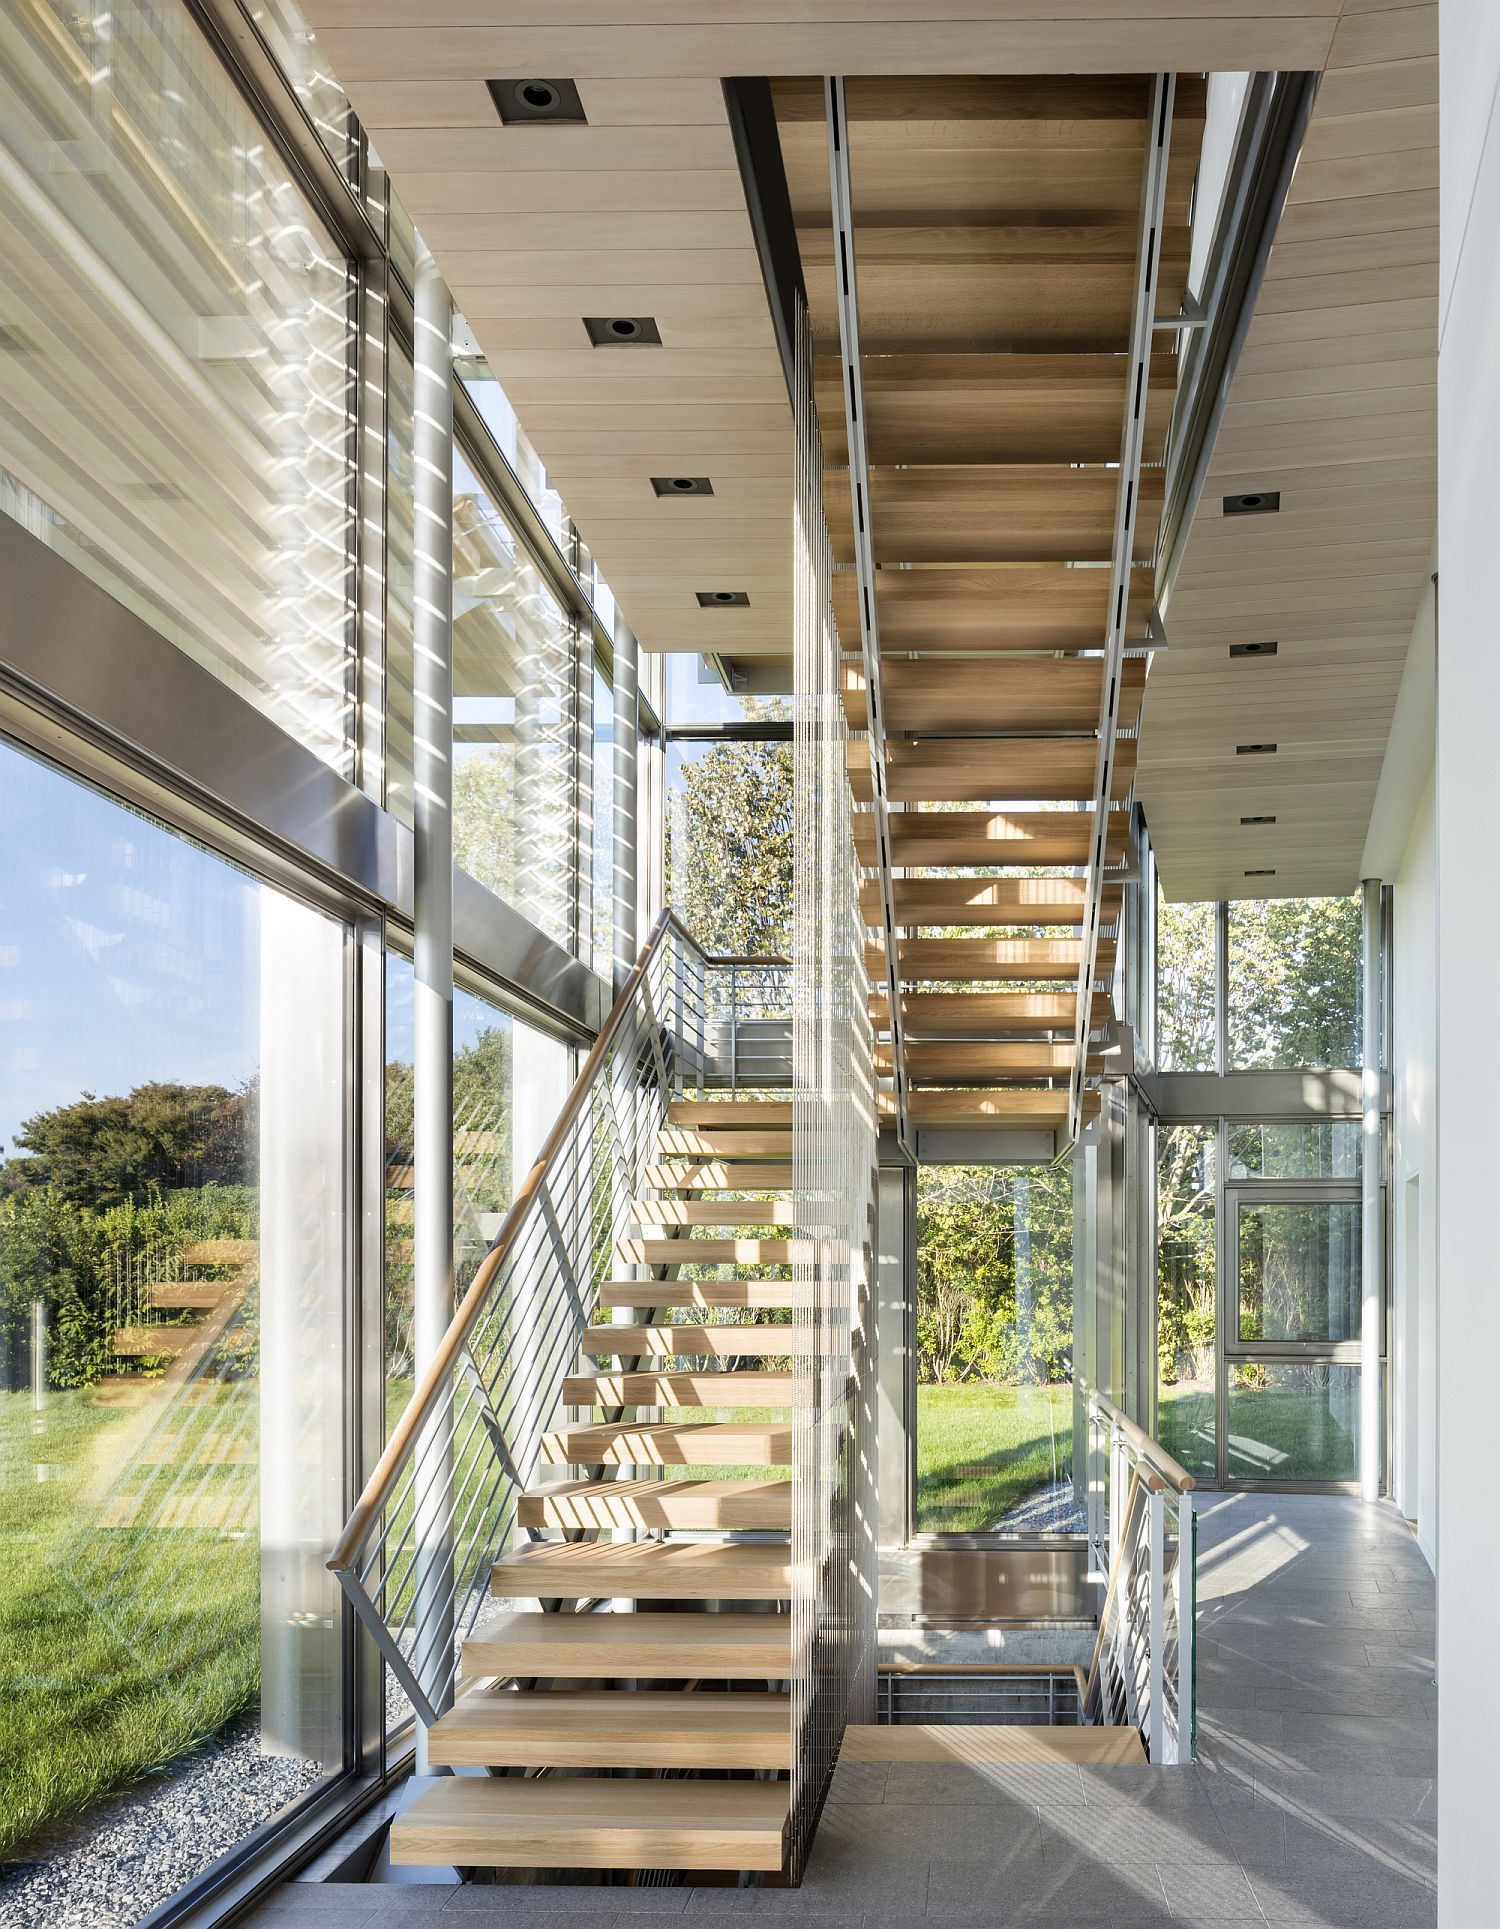 Staircase in wood connecting different level of the home